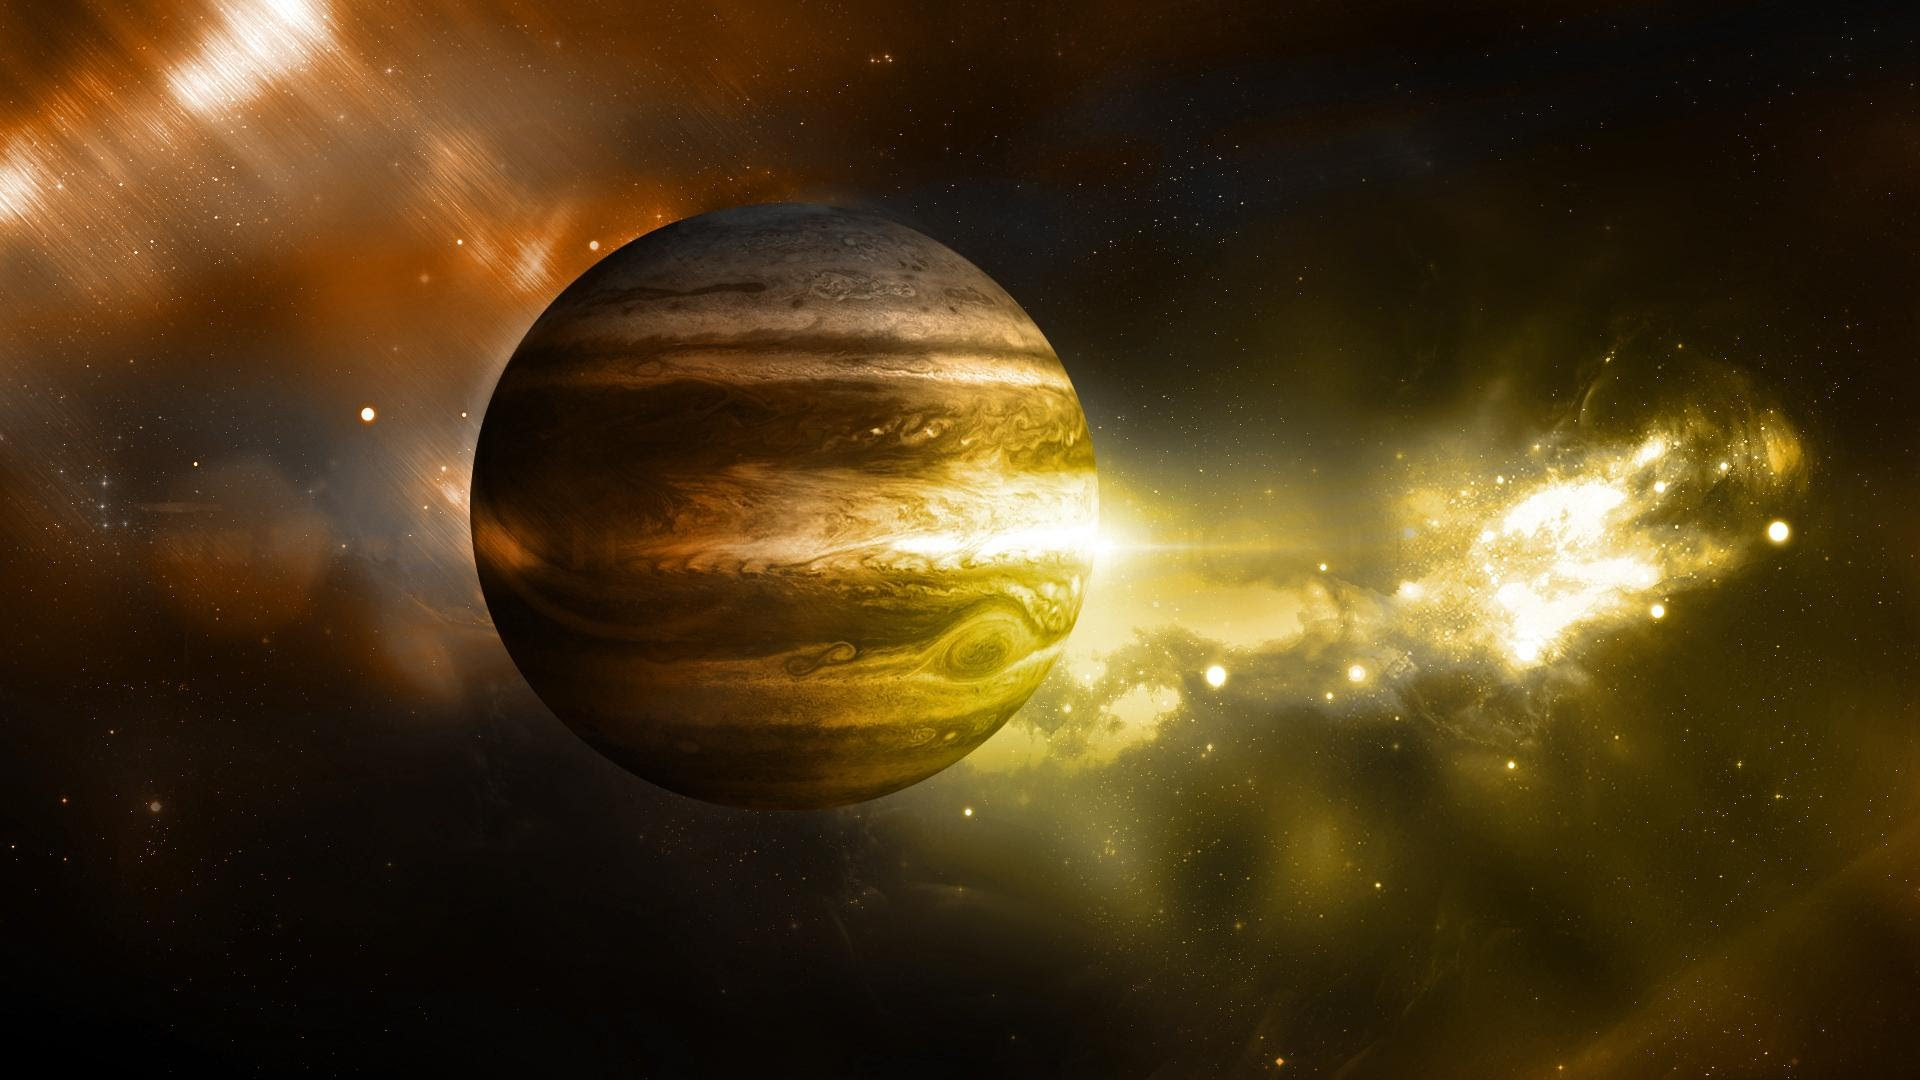 Jupiter Wallpaper 7   1920 X 1080 stmednet 1920x1080